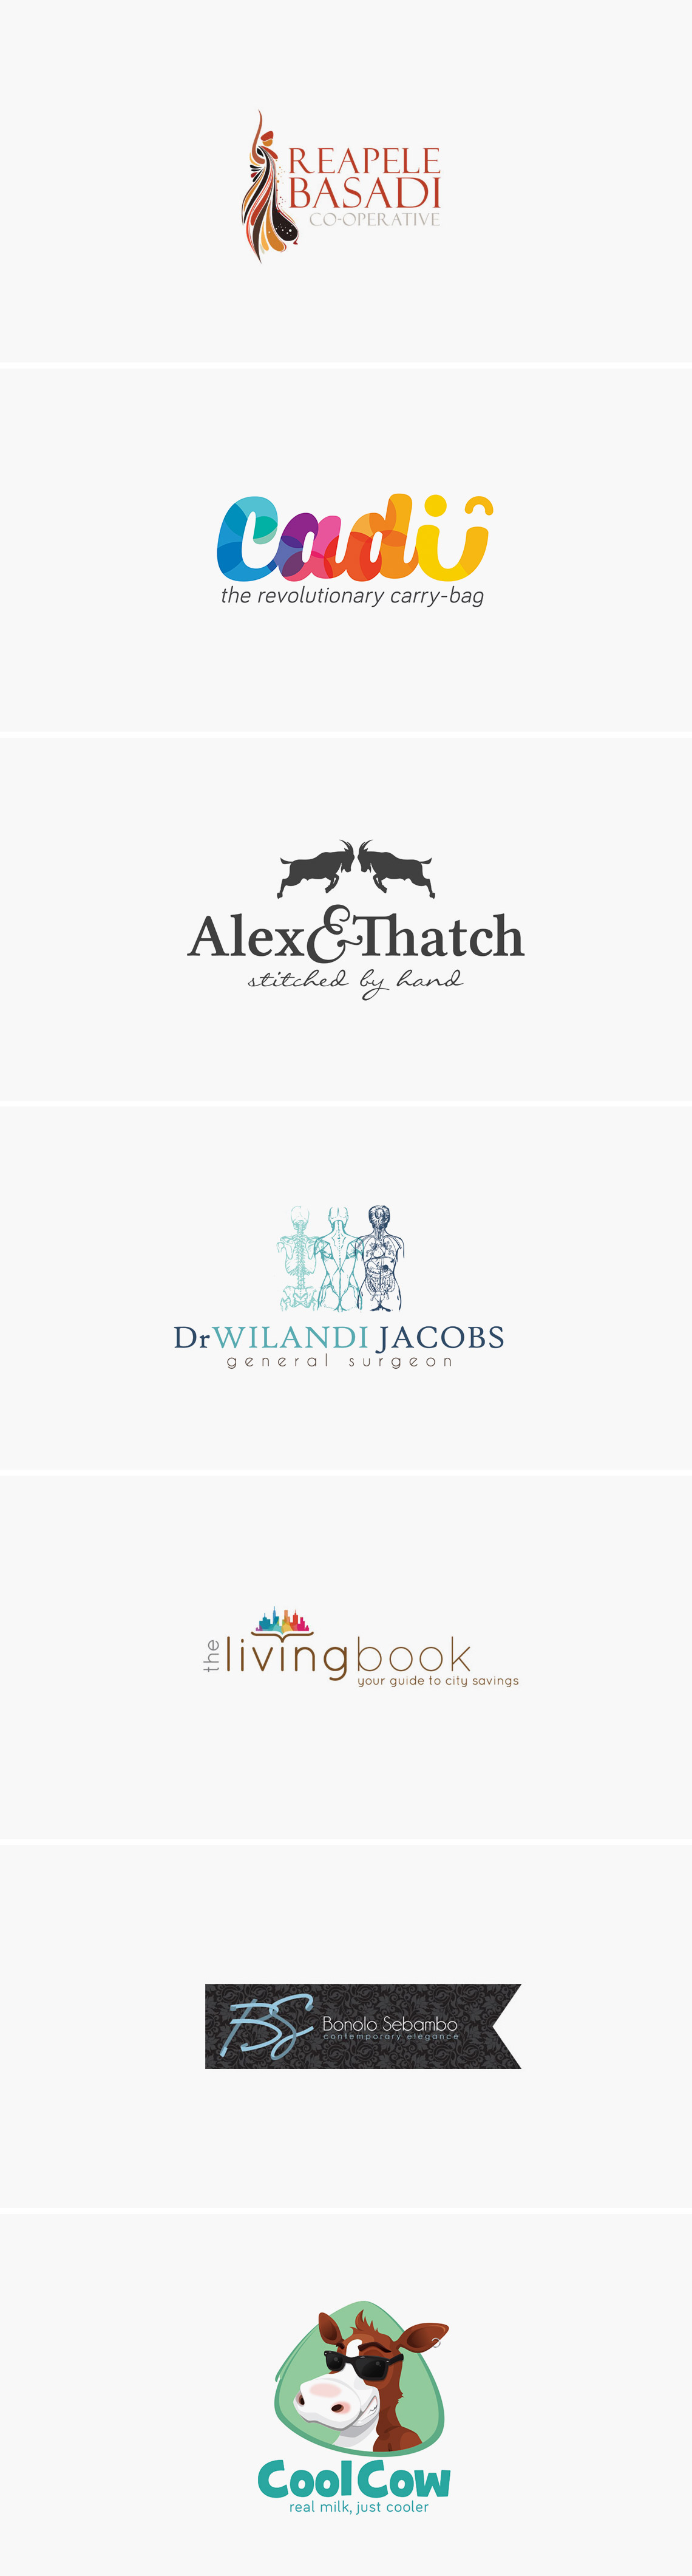 Logo Design Various